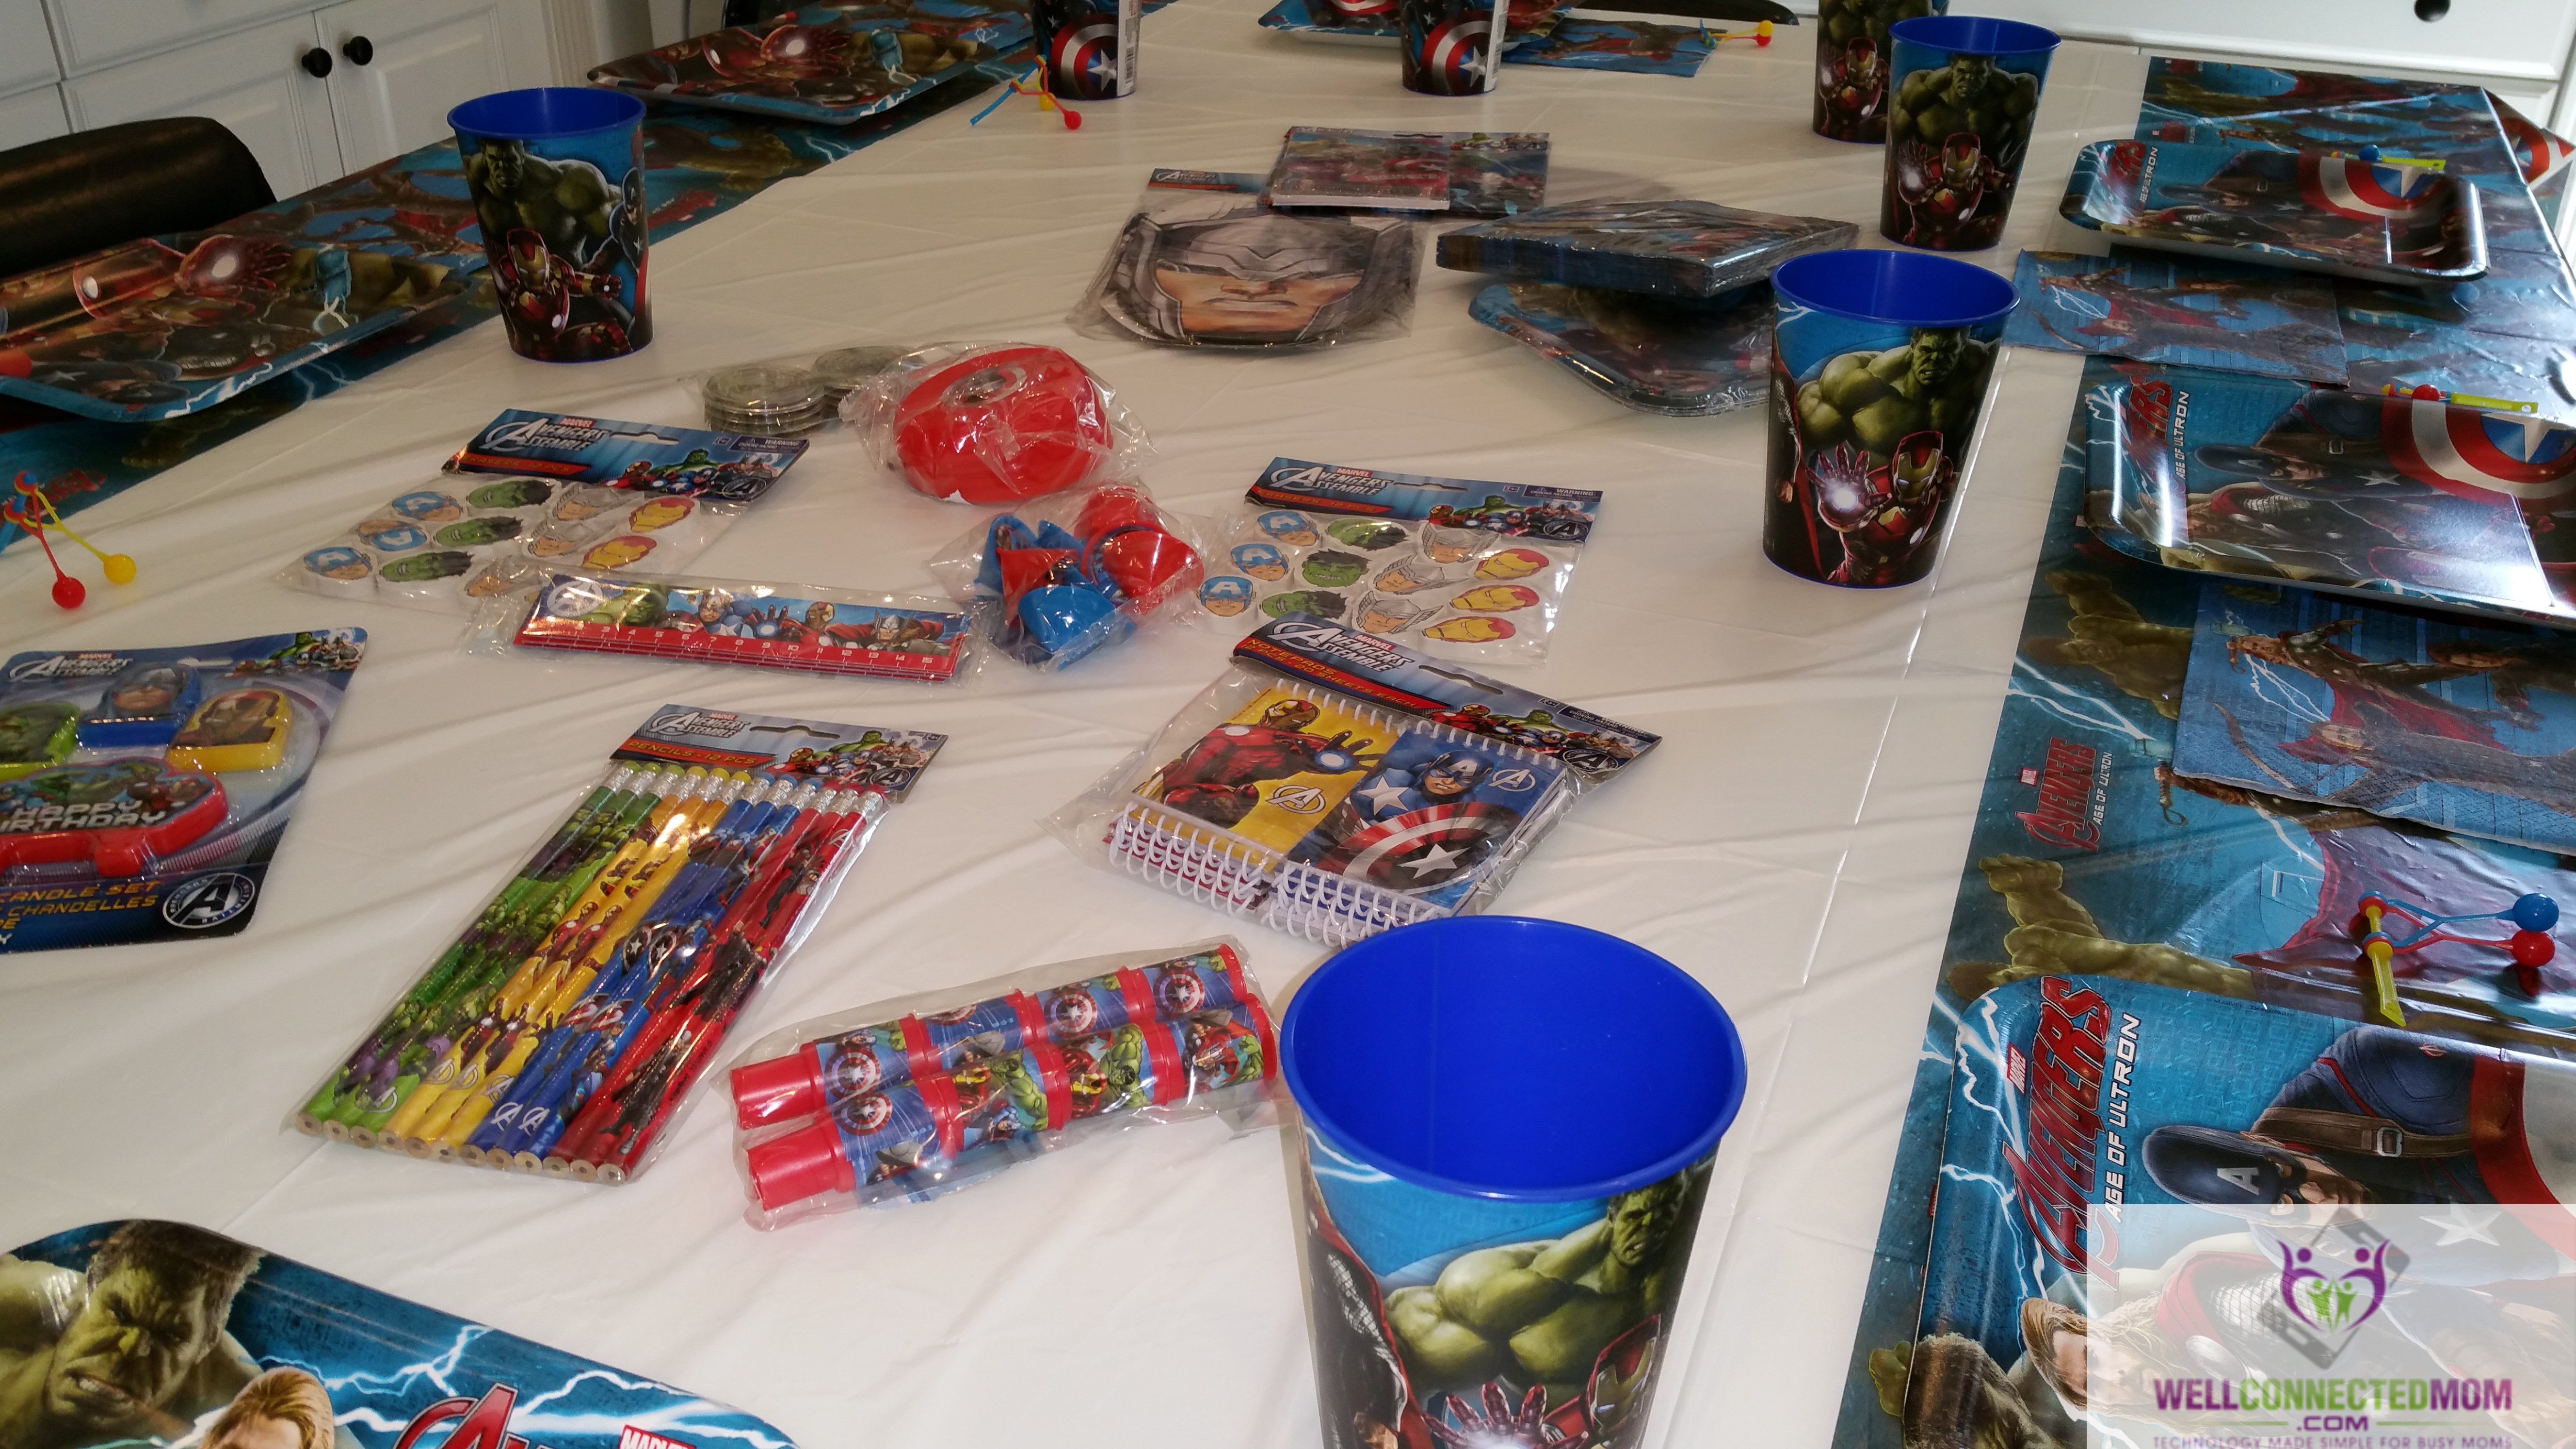 Fancy Now is the time to throw an AVENGERS u party There is so many Marvel themed decorations and party favors available We were inspired to throw an AVENGERS